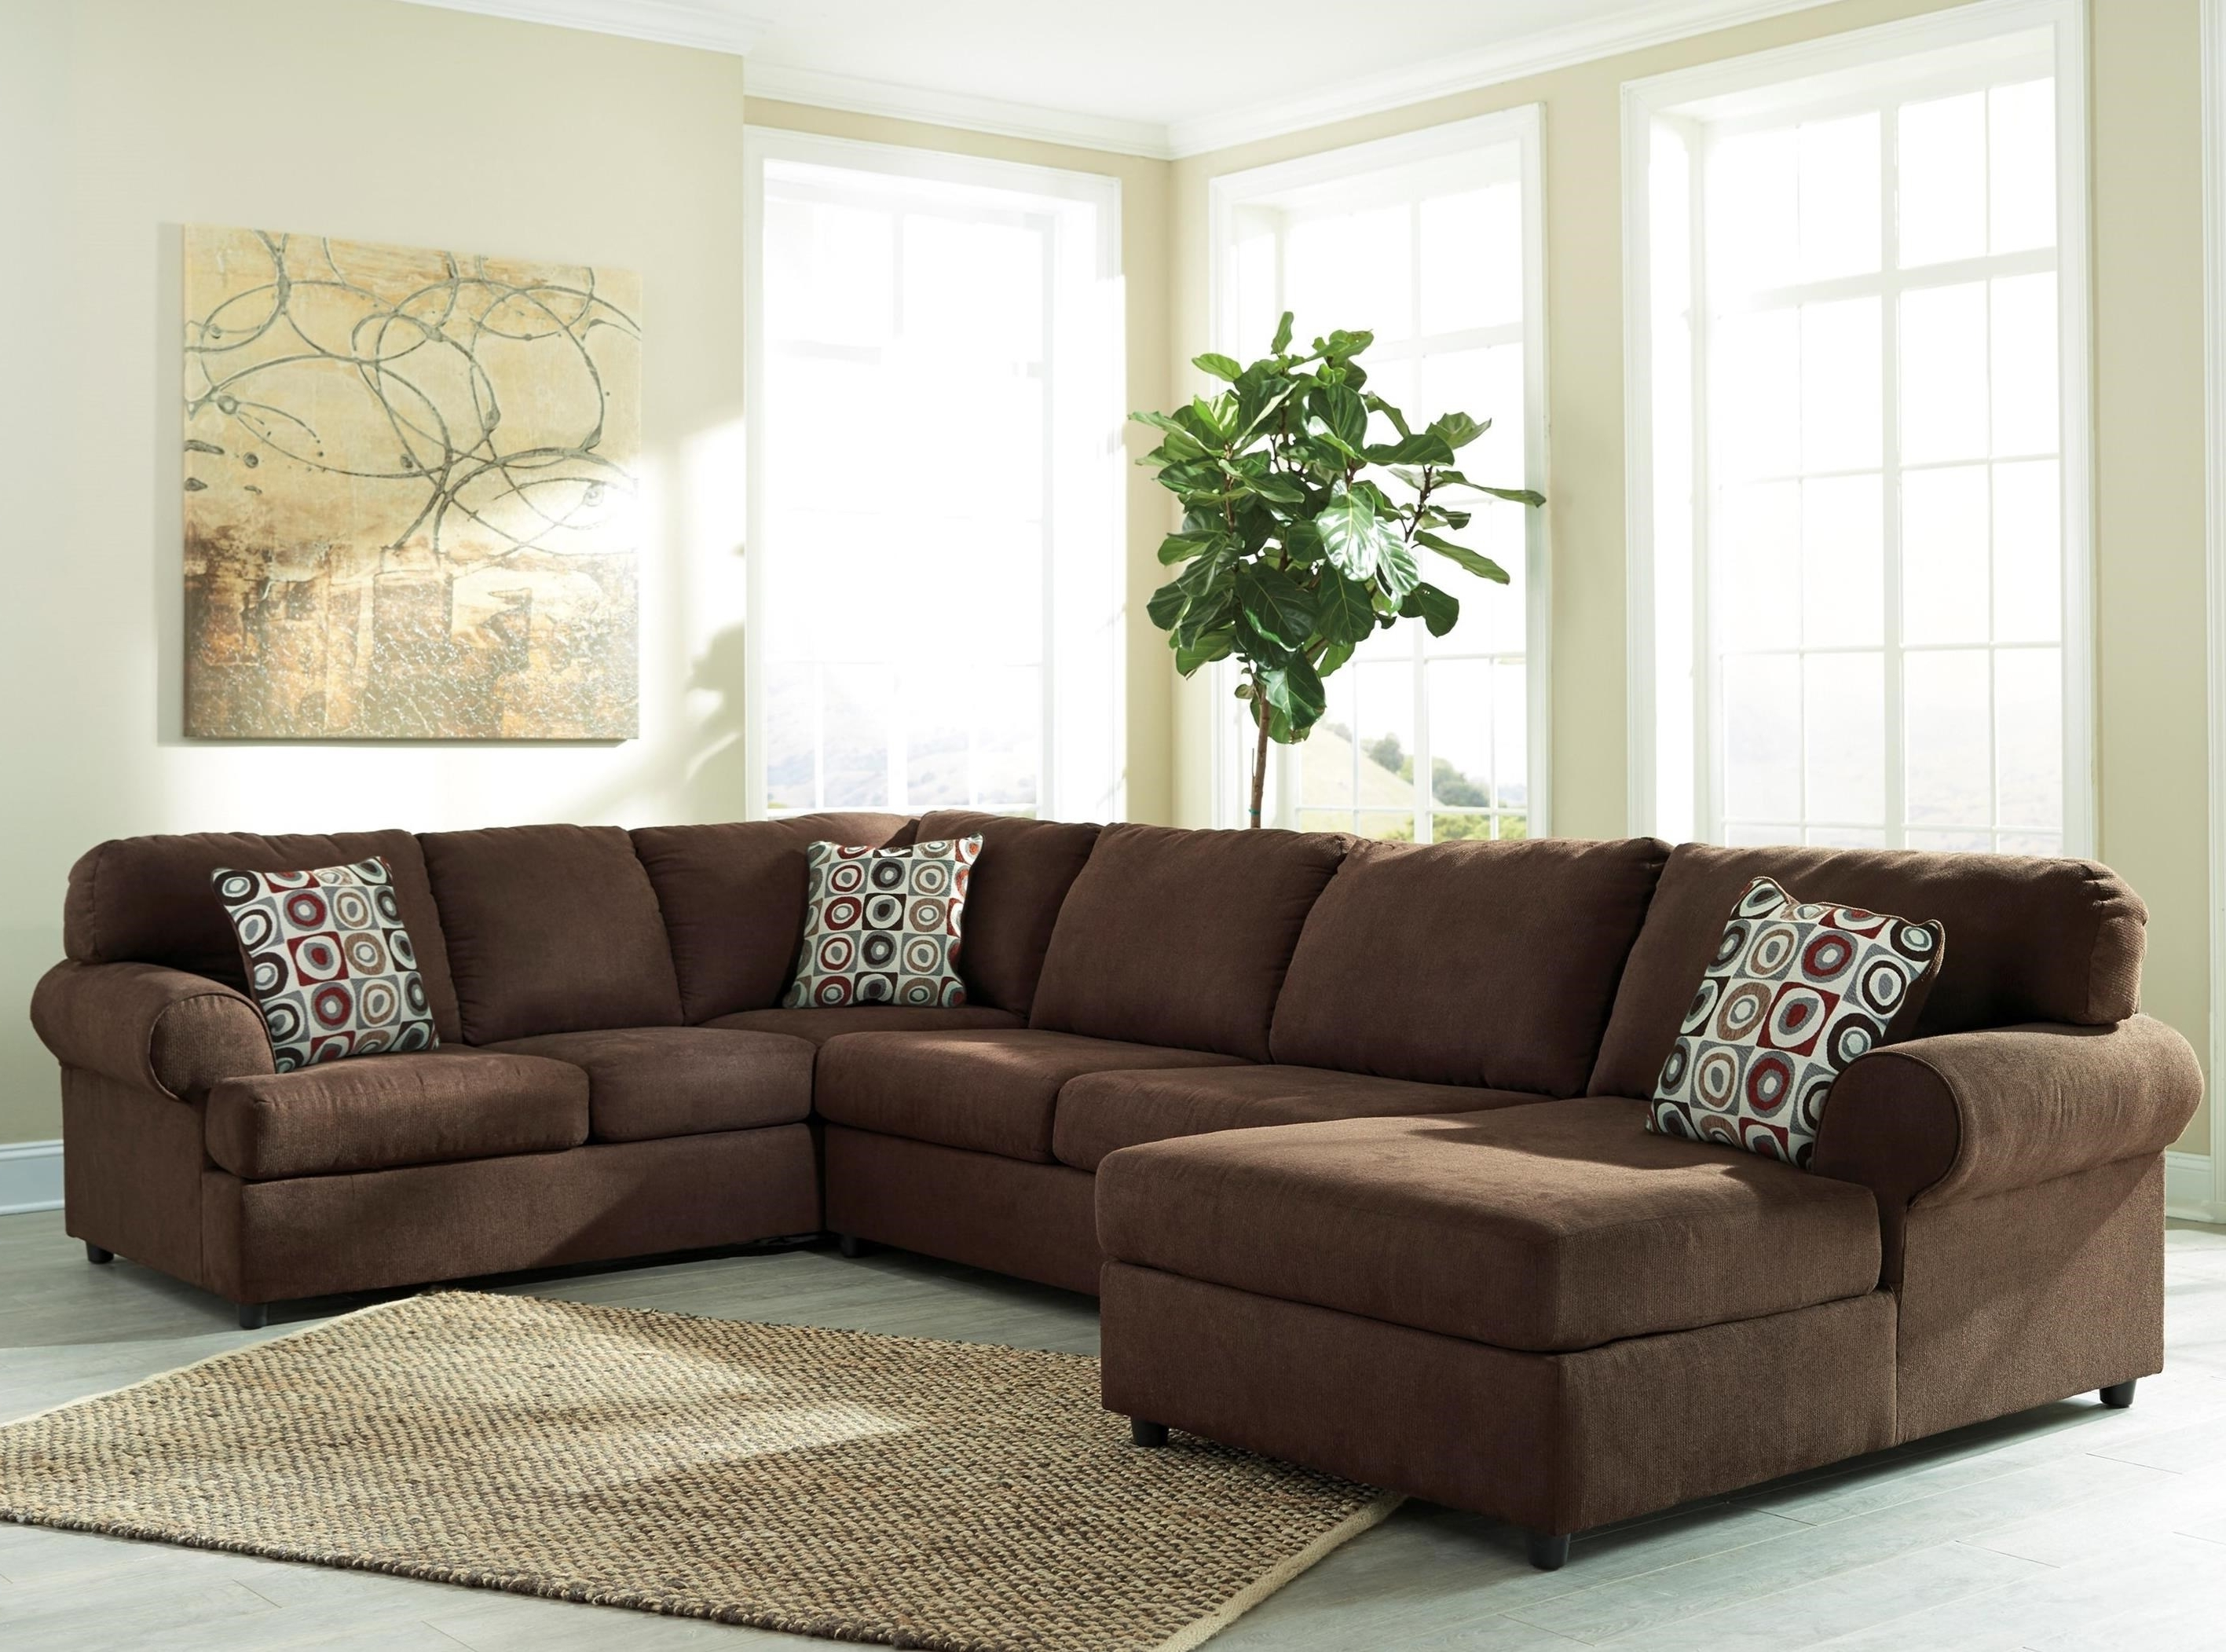 East Bay Sectional Sofas Throughout Newest Signature Designashley Jayceon 3 Piece Sectional With Left (View 4 of 15)